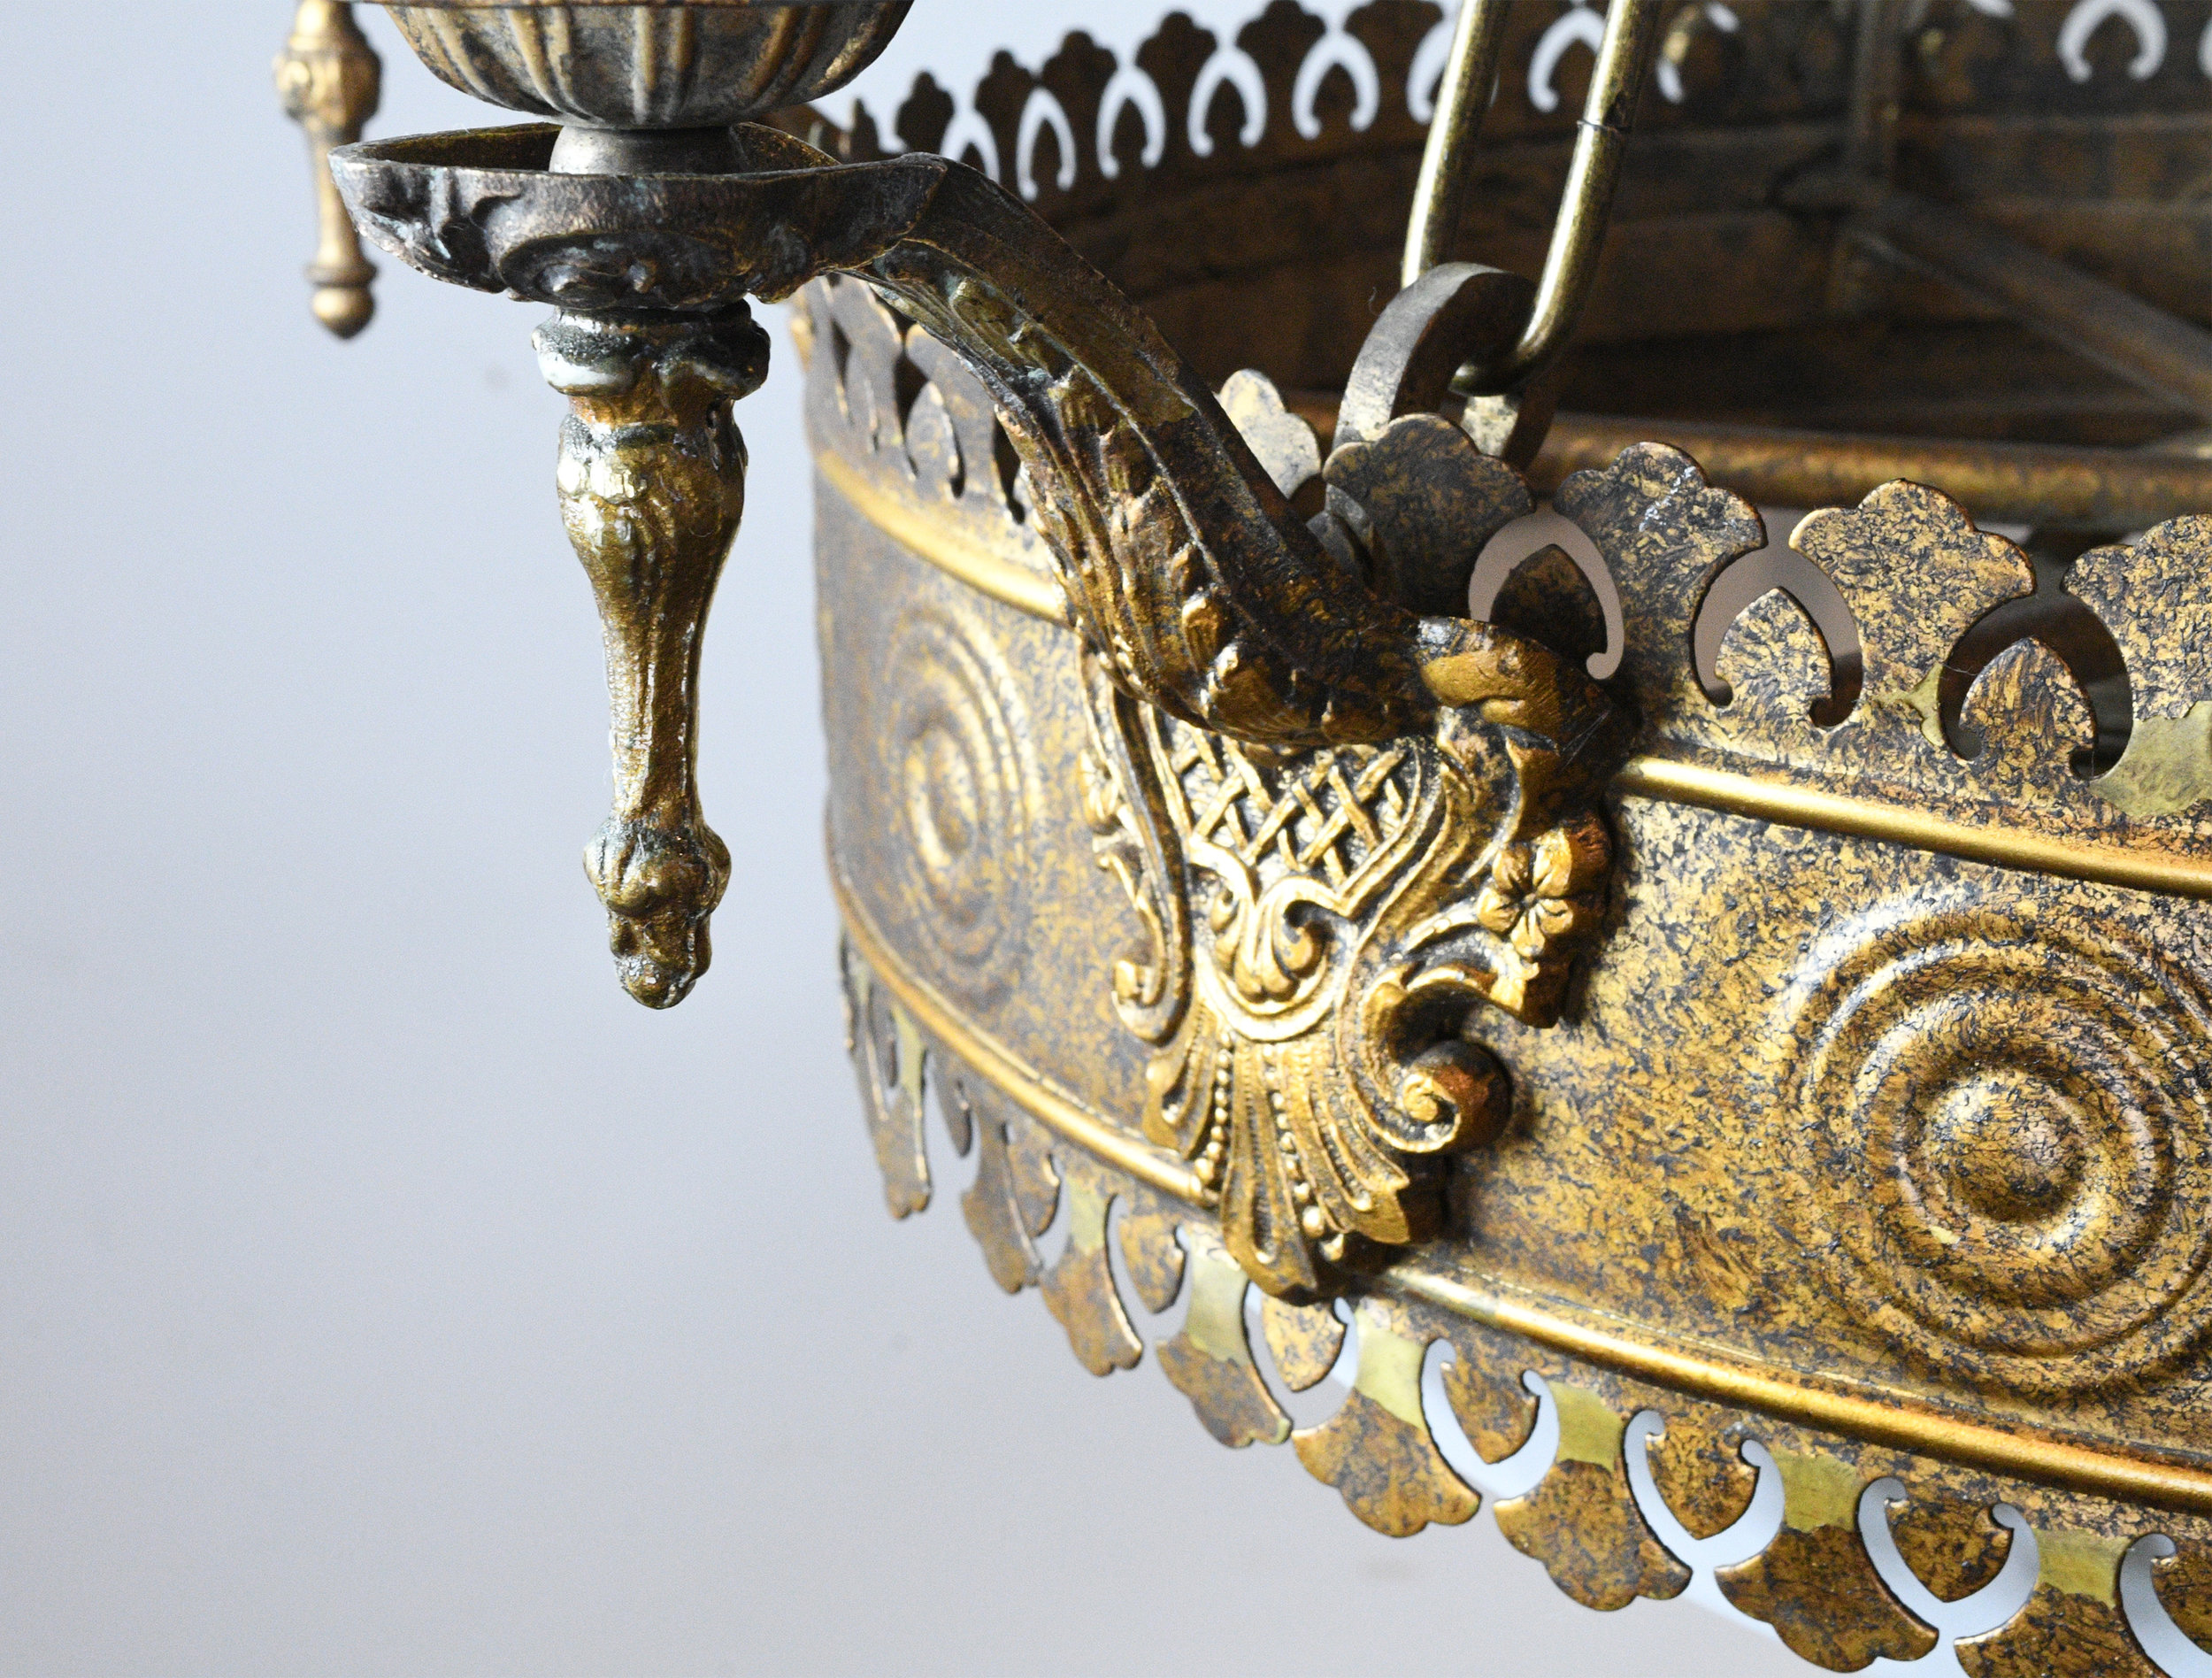 47529-6-candle-tudor-brass-chand-with-bent-glass-detail-9.jpg